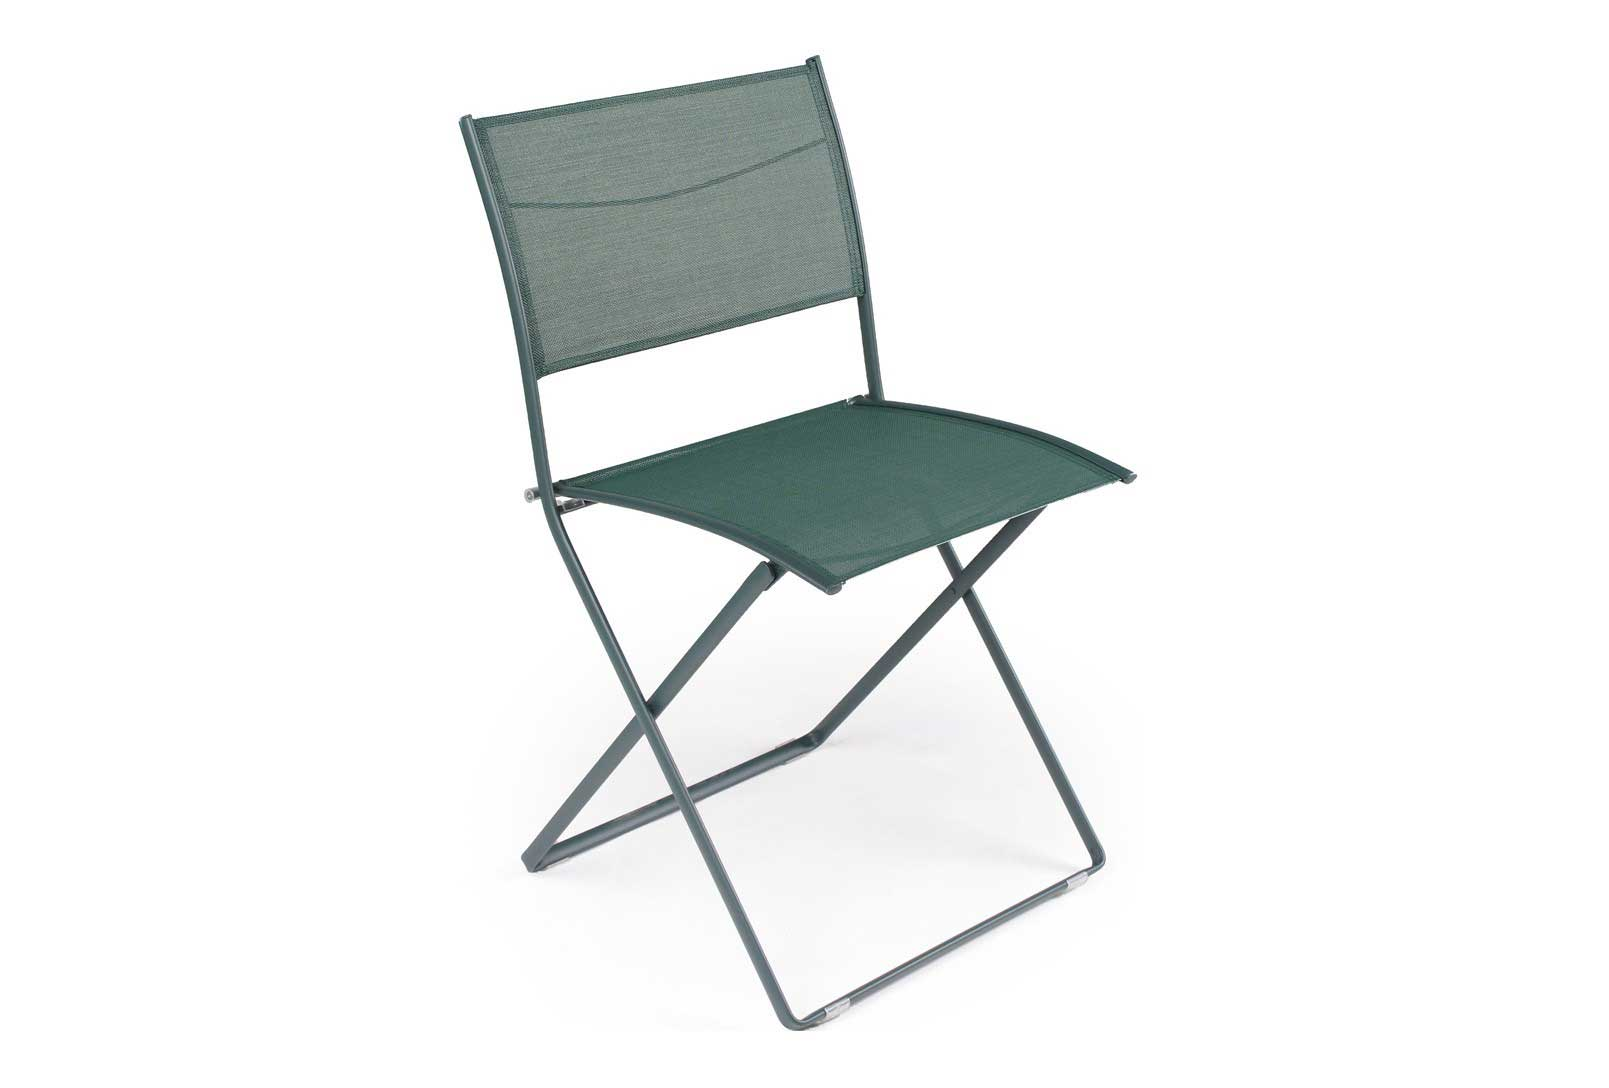 Plein Air Patio Mesh Folding Chair